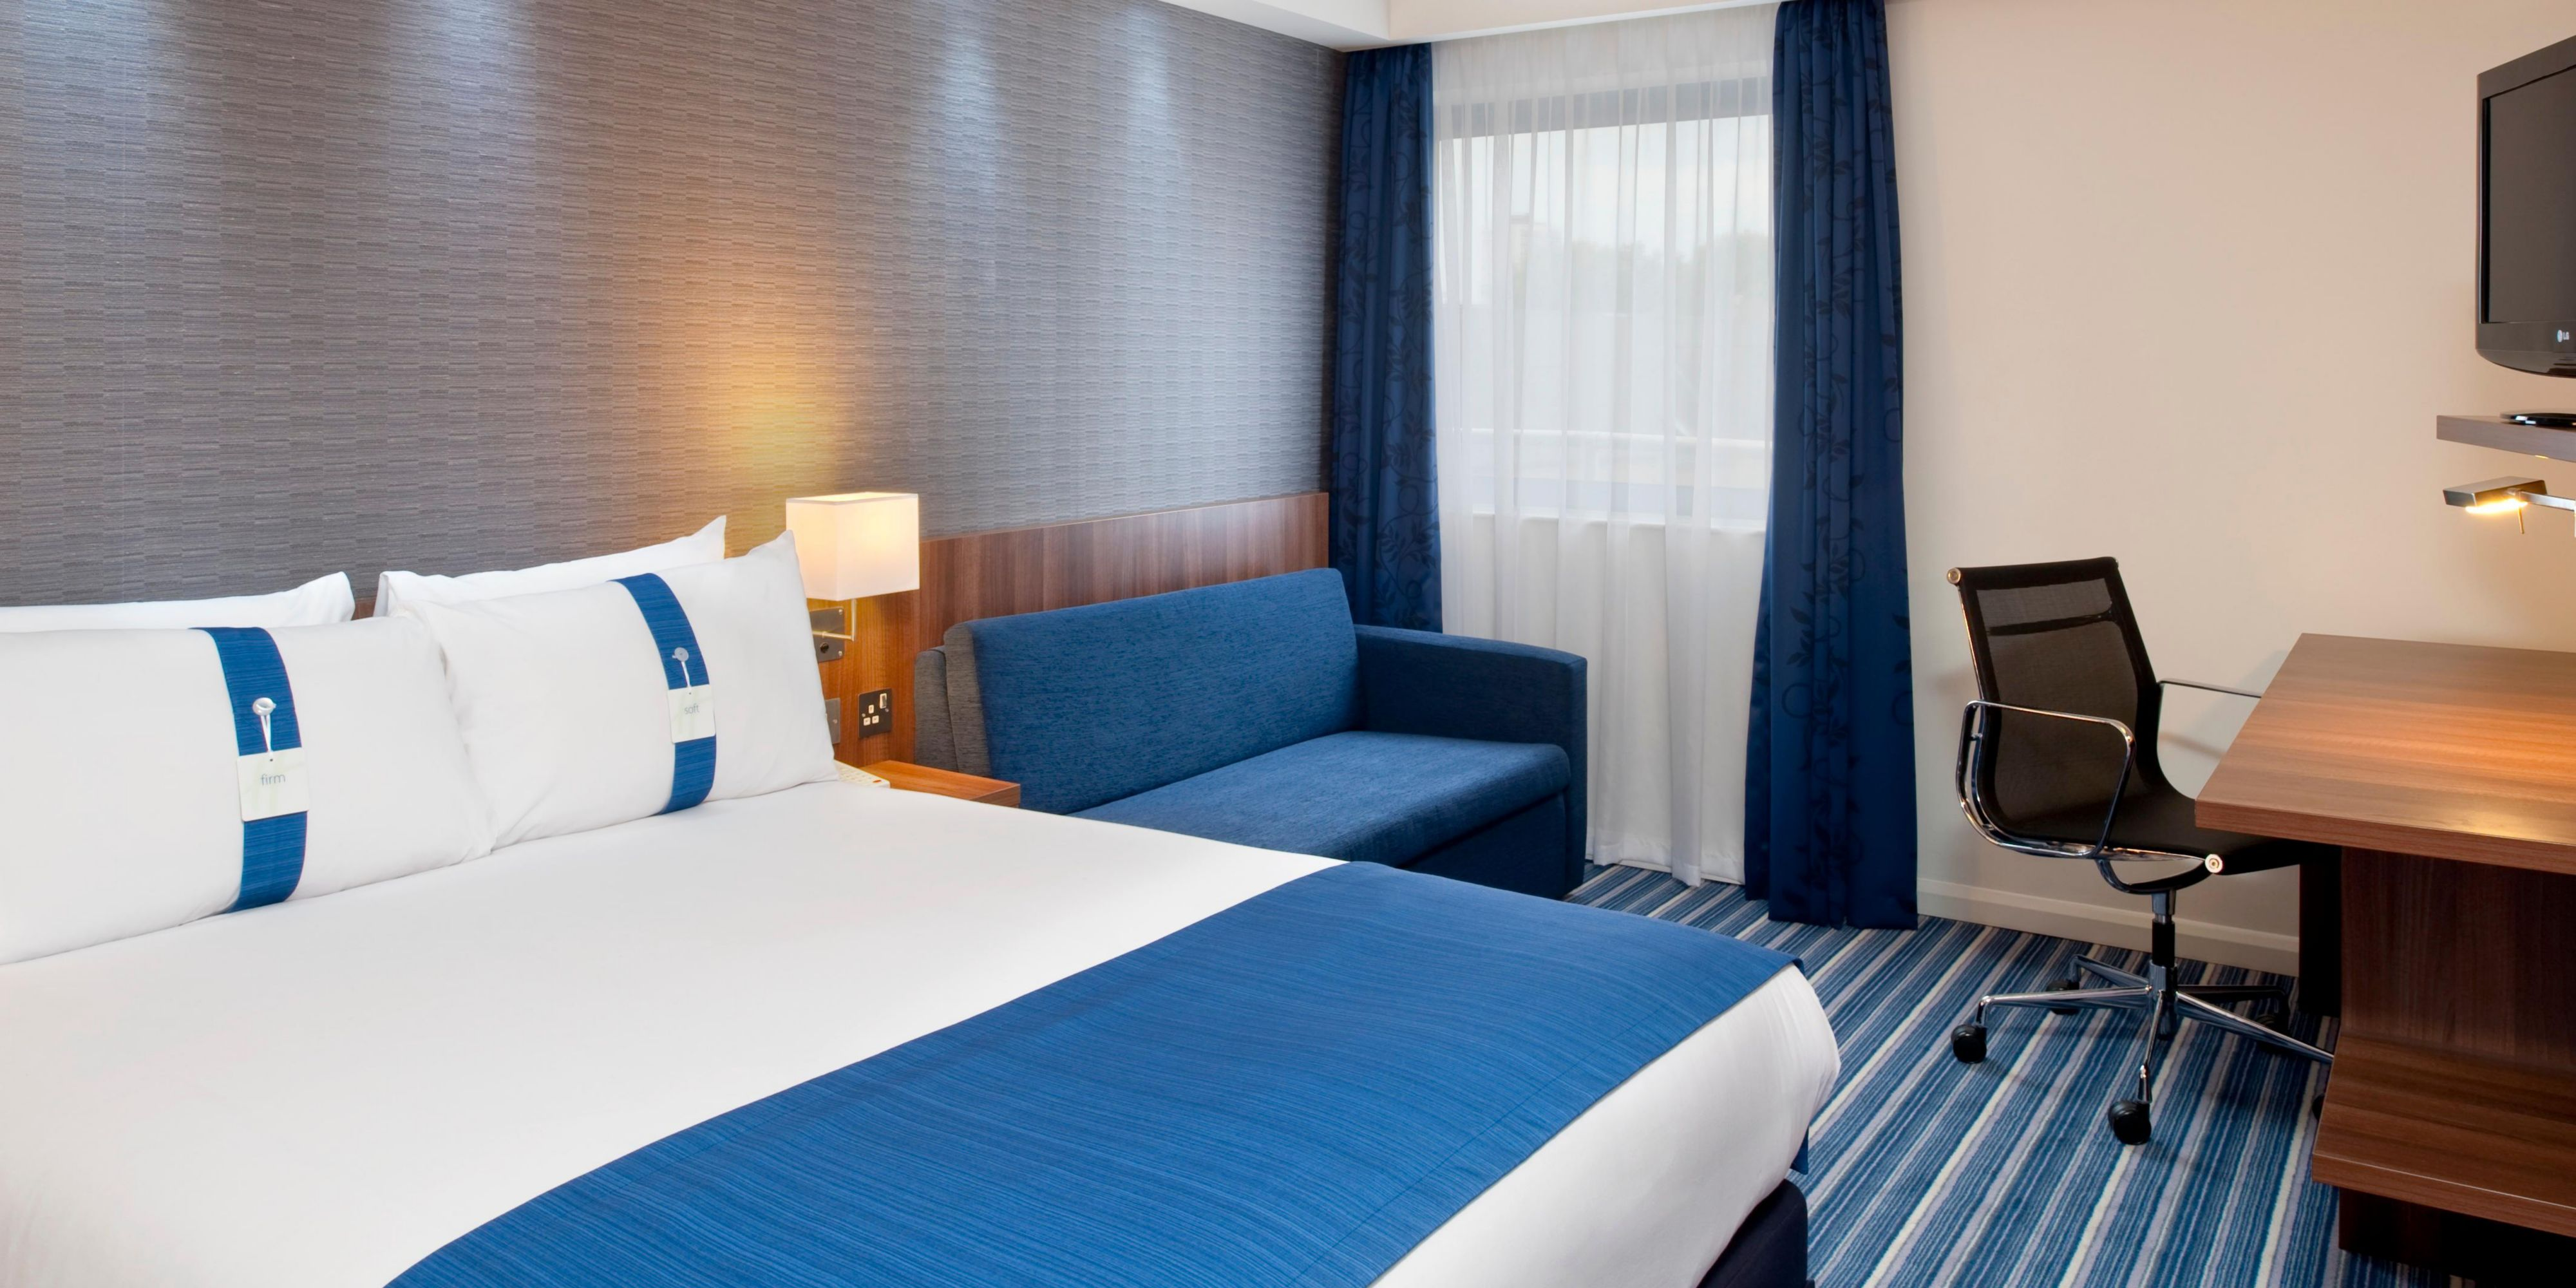 Holiday Inn Express London City Hotel by IHG